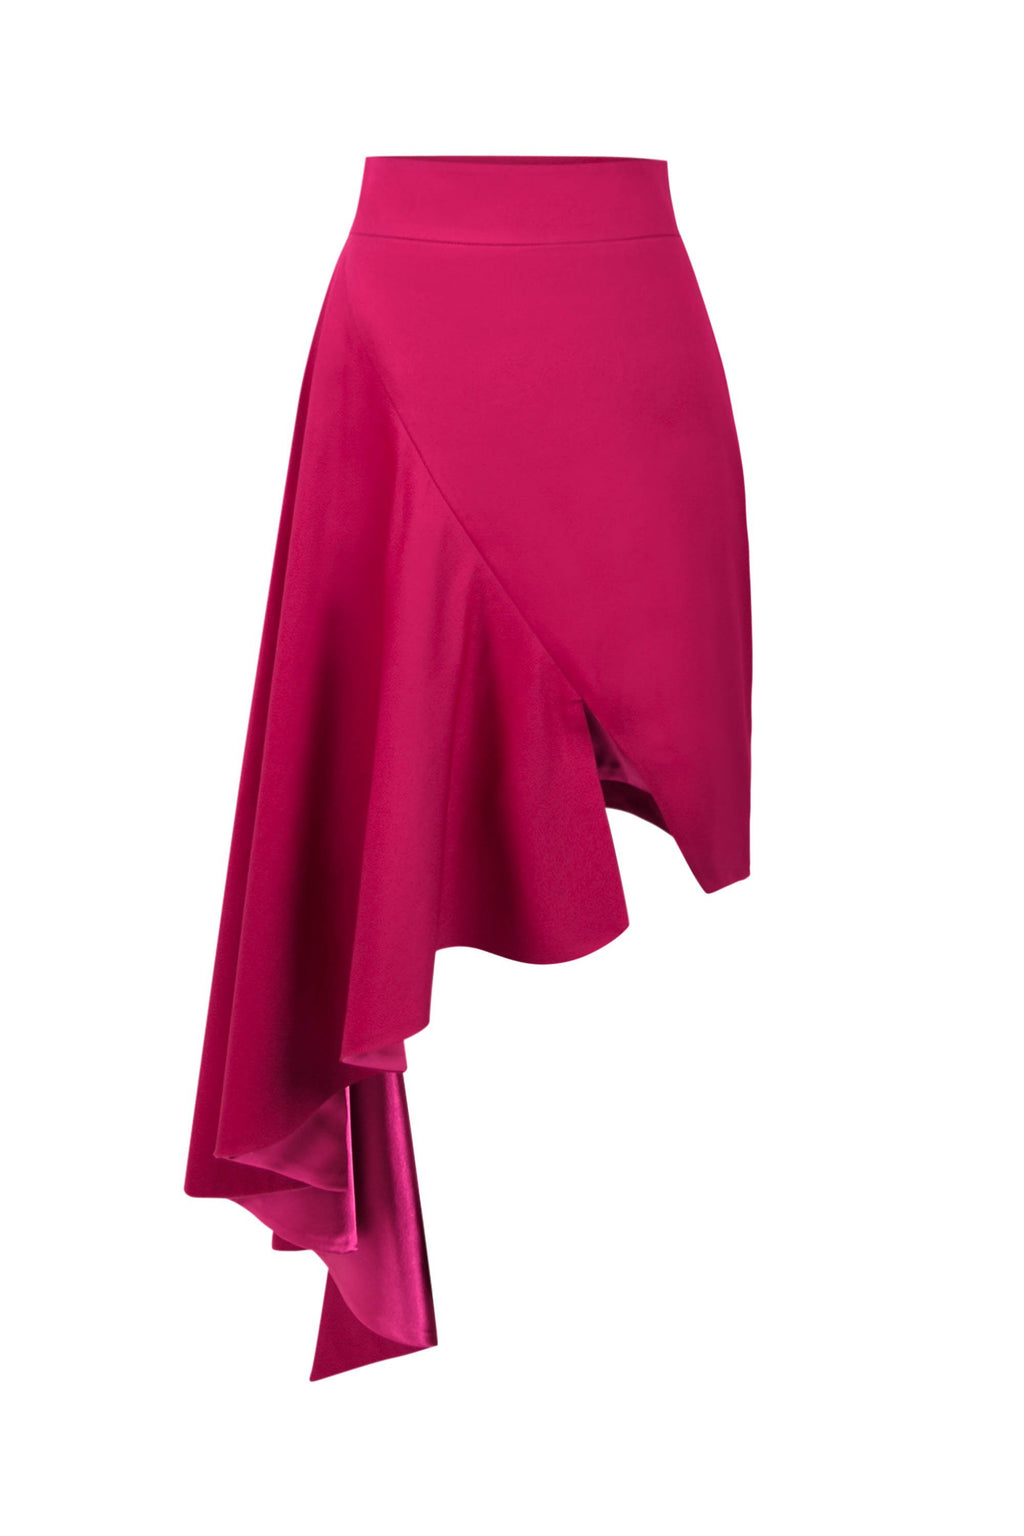 Corporate Elegance High-Rise Asymmetric Midi Skirt - Pink - Tia Dorraine London